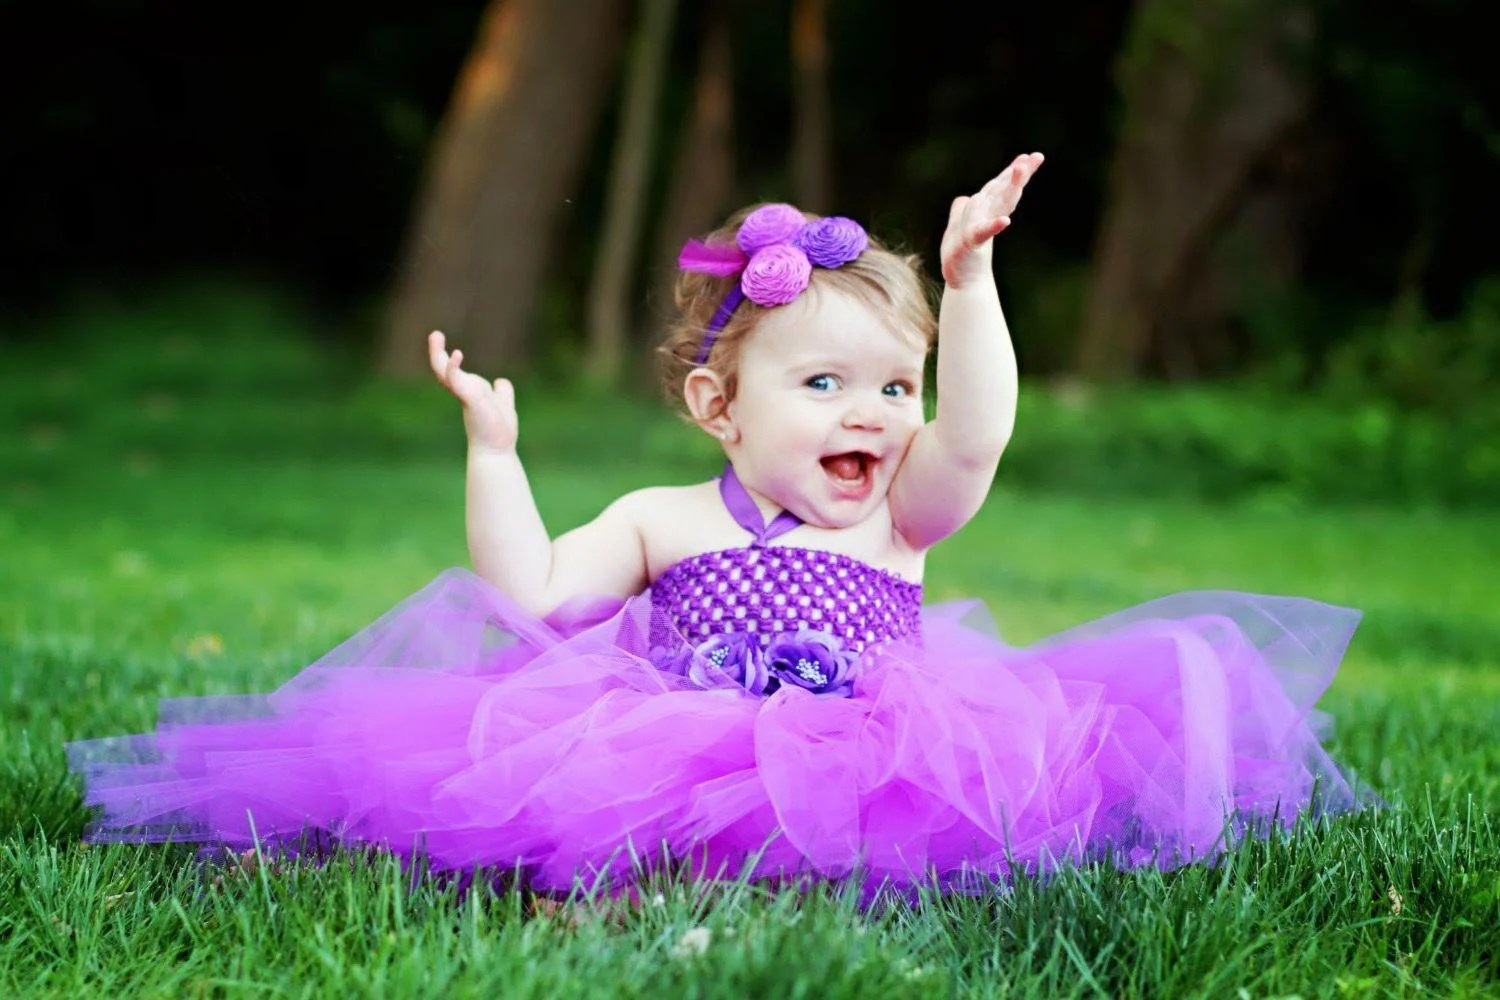 Cute Chubby Babies Wallpapers Cute Babies Wallpapers Wallpaper Cave